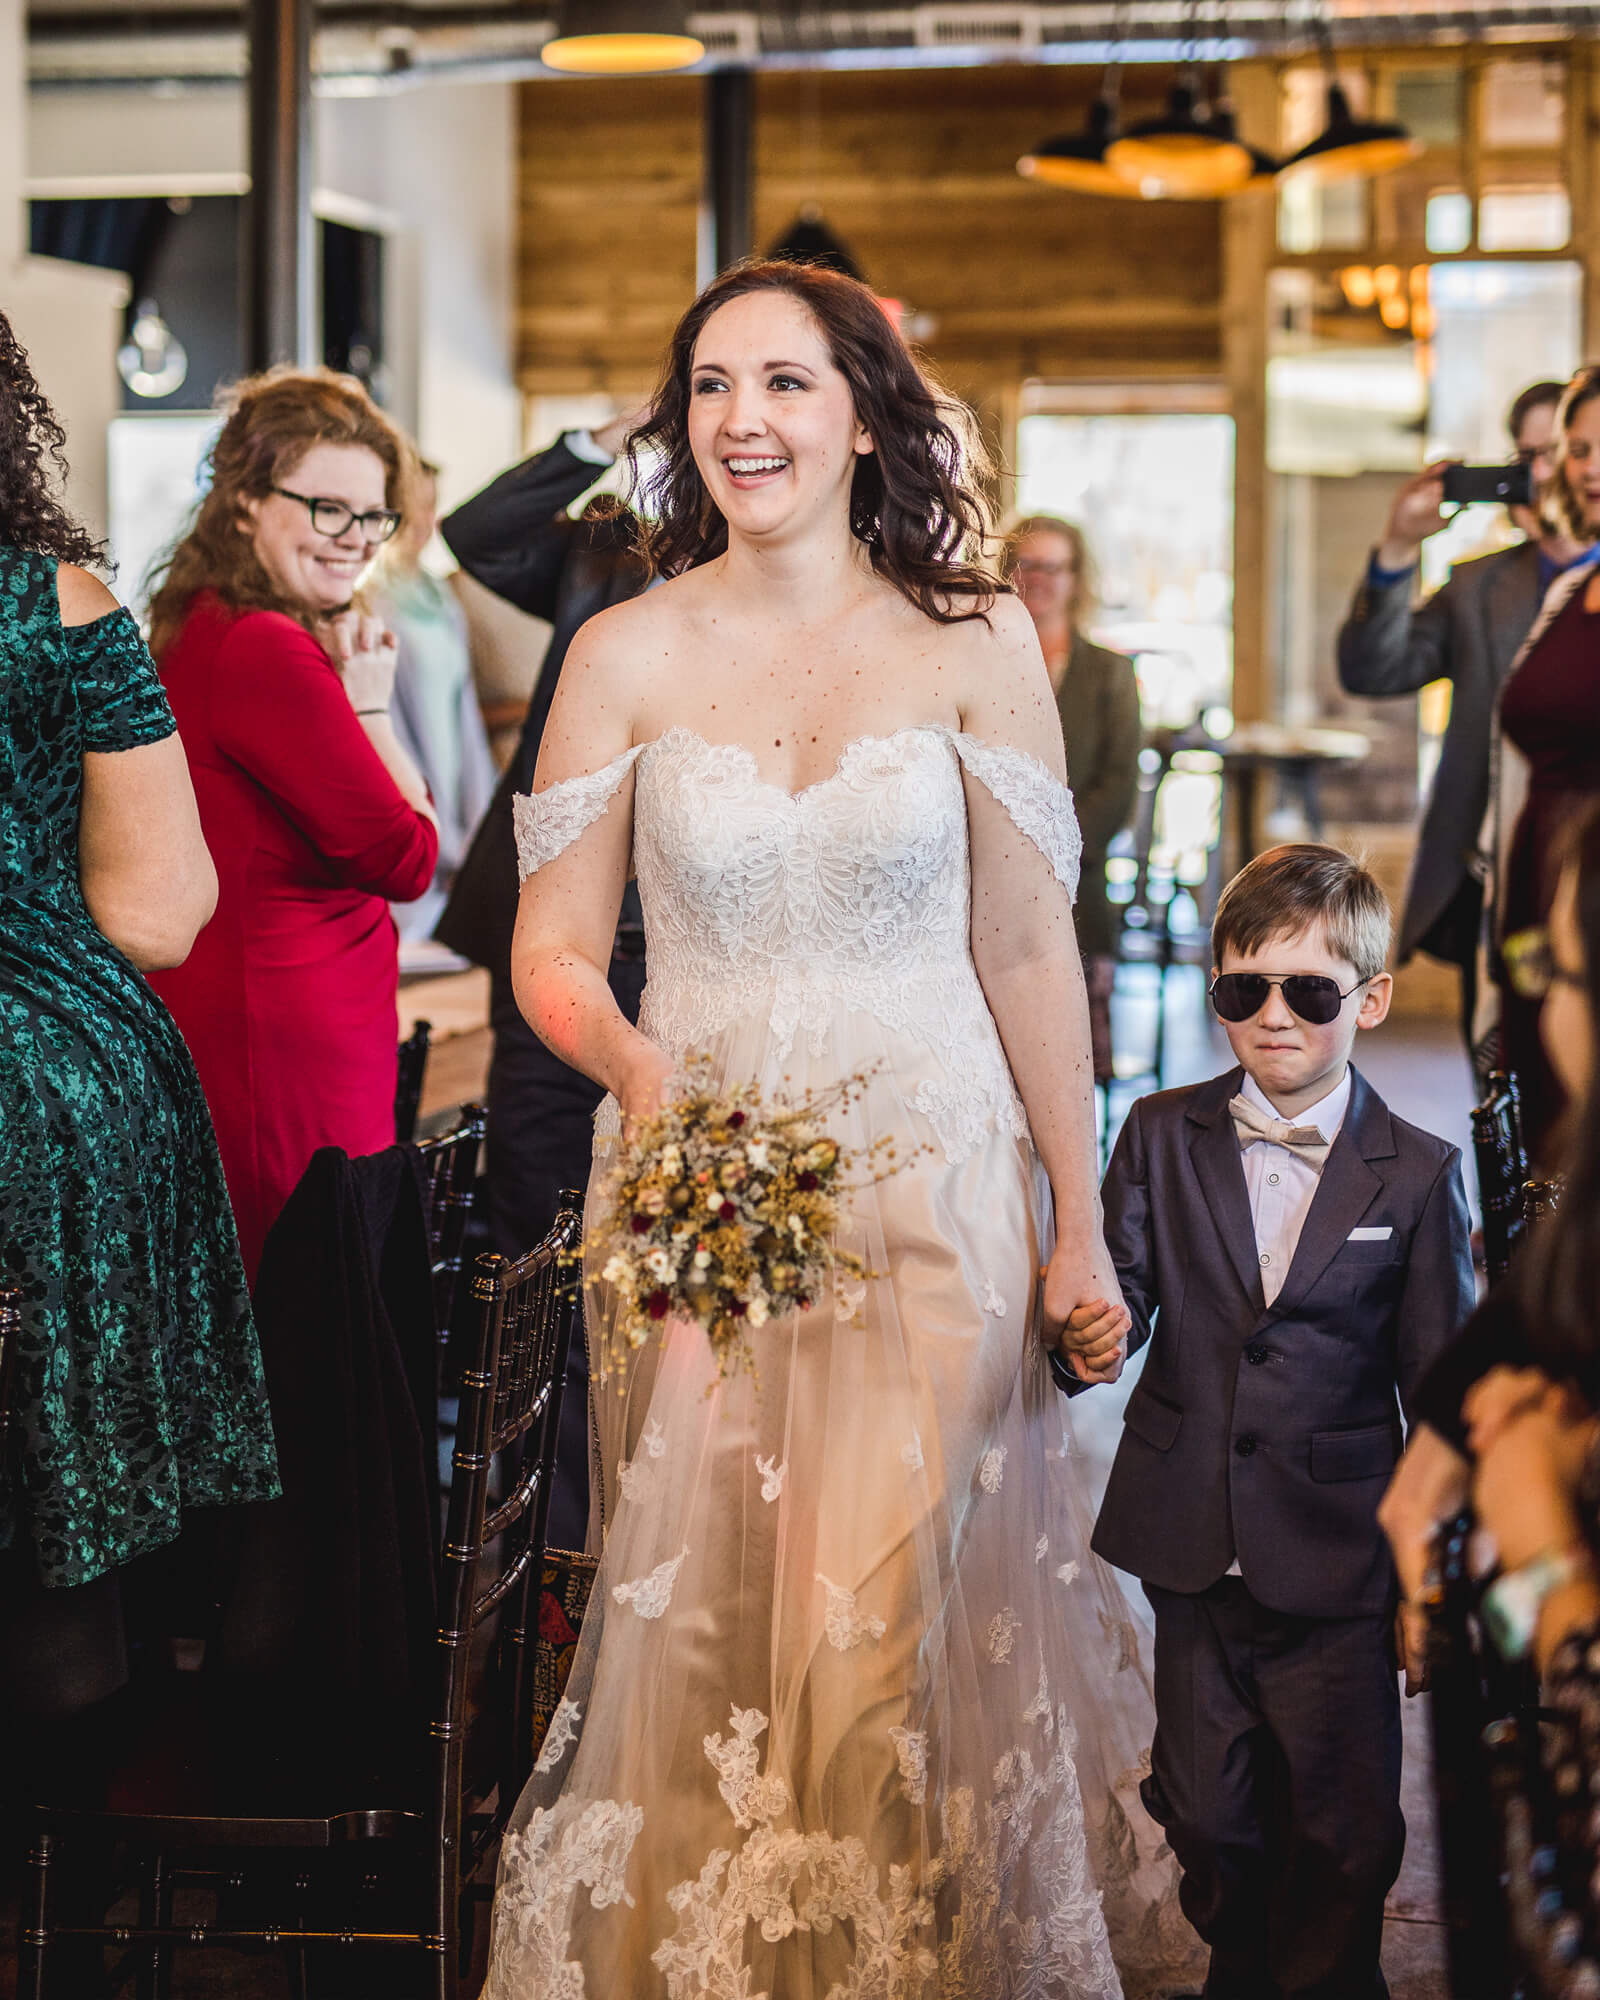 Walking Down the Aisle - Mom's Little Superhero